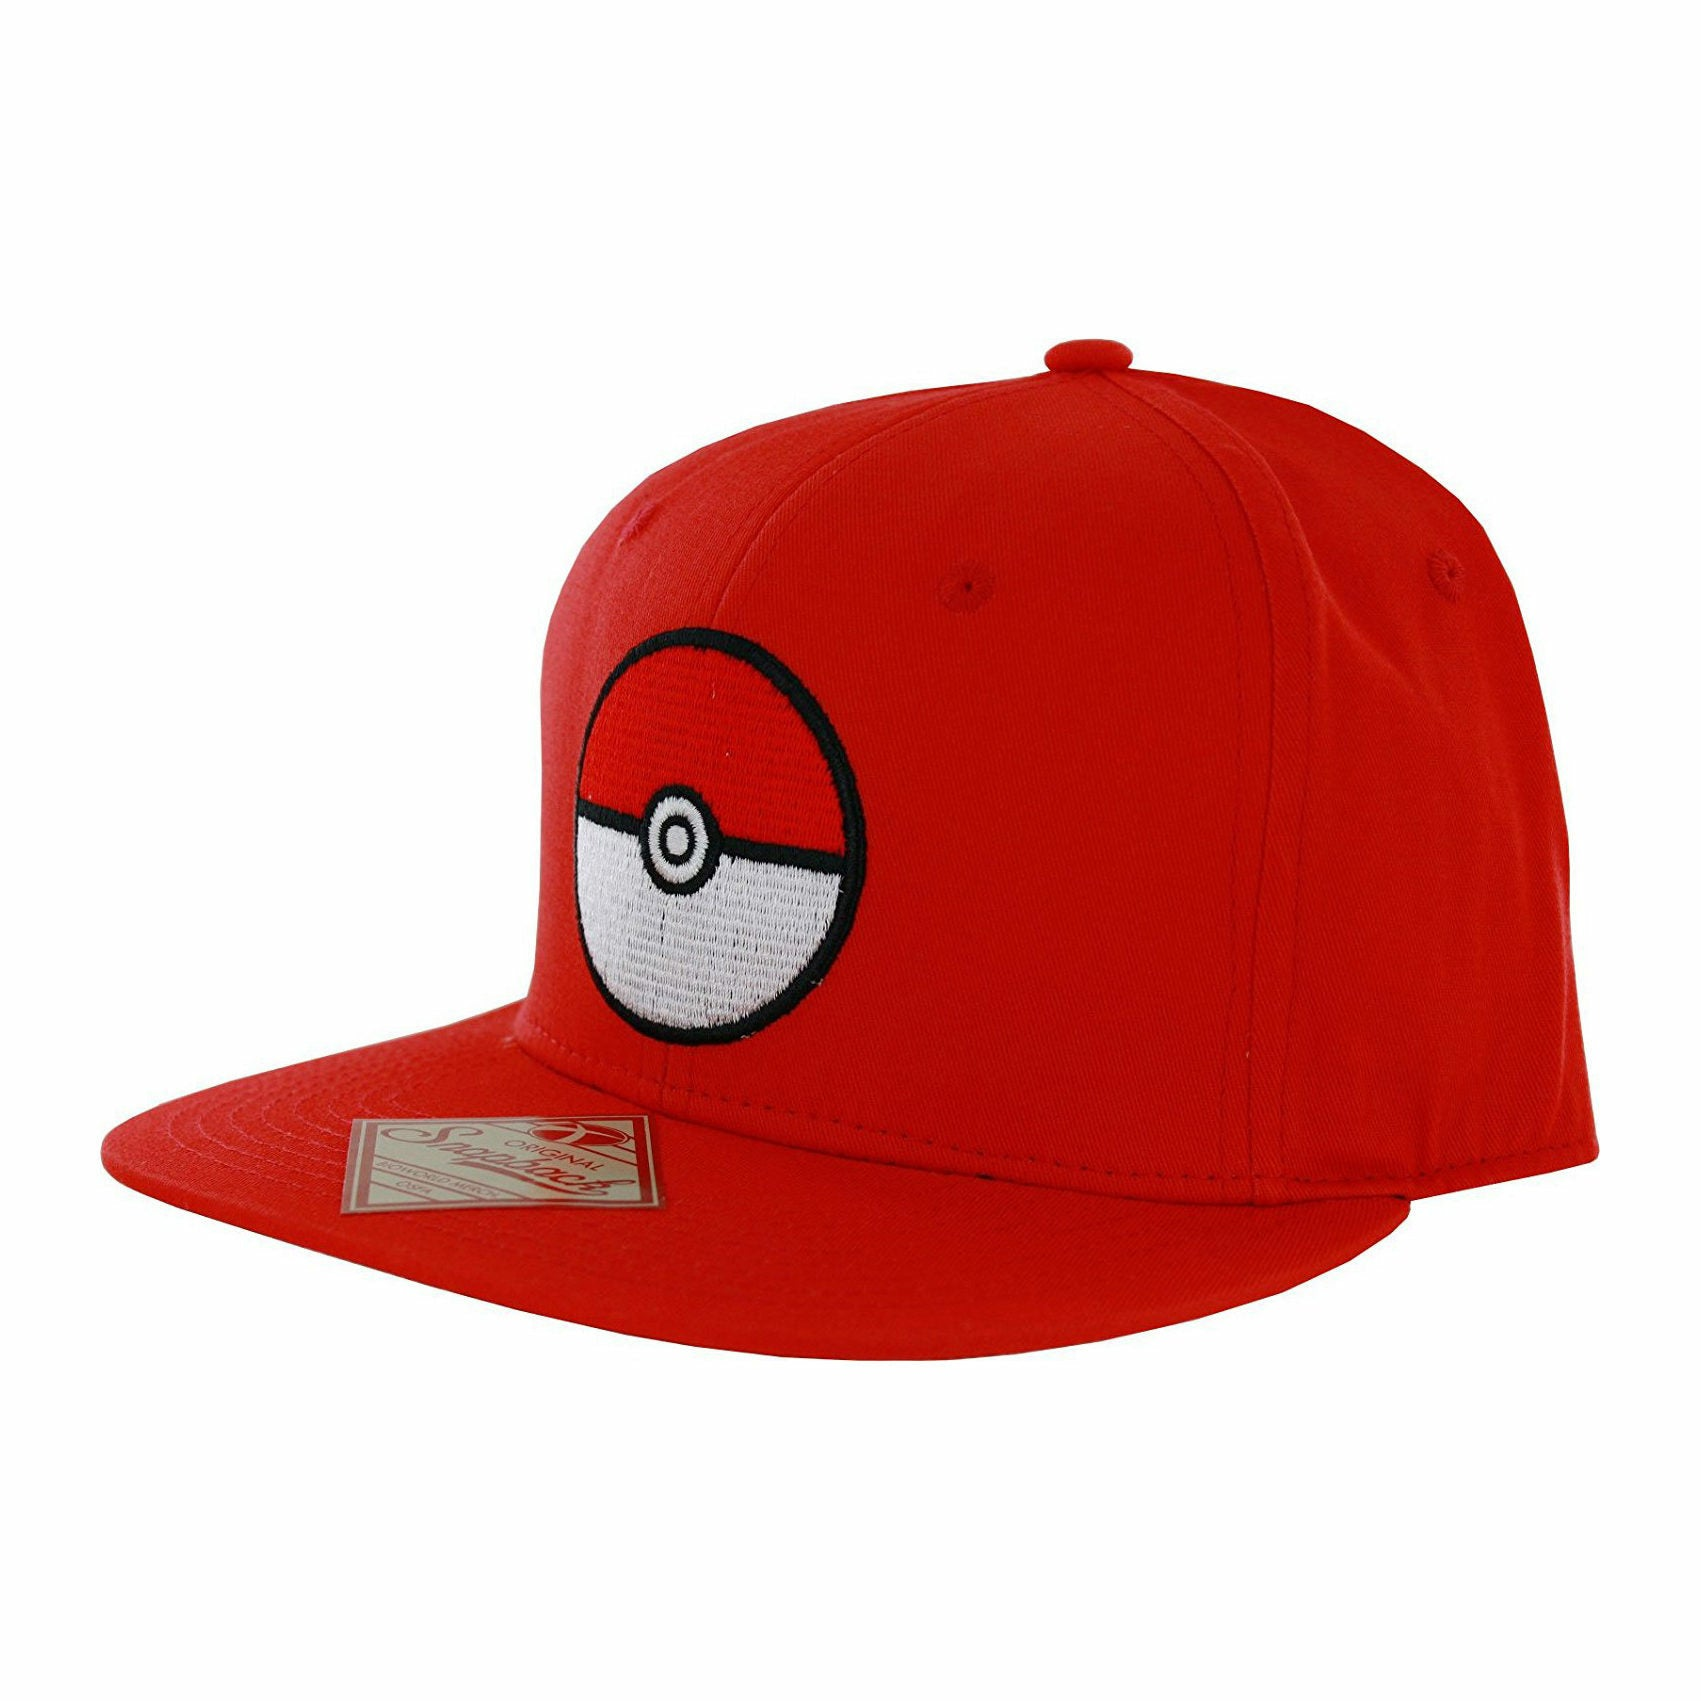 Pokemon Pokeball Red Snapback Baseball Cap